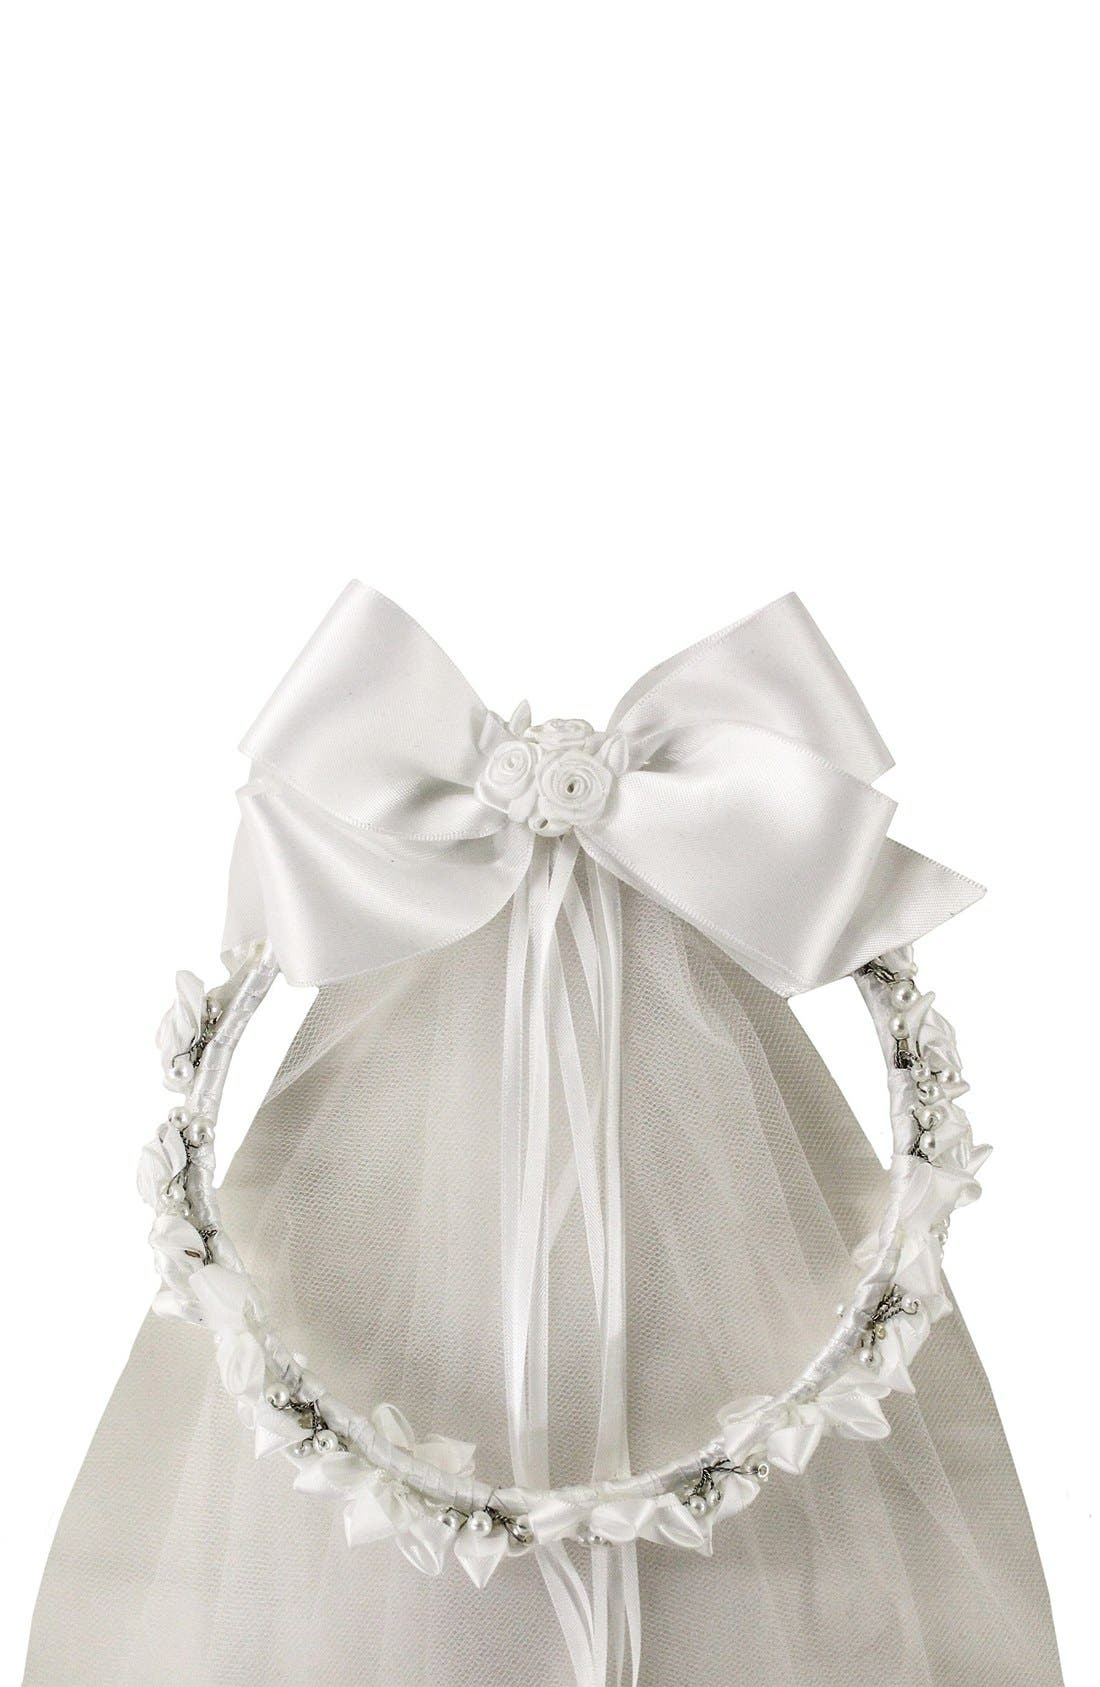 Communion Wreath with Removable Veil,                         Main,                         color, White